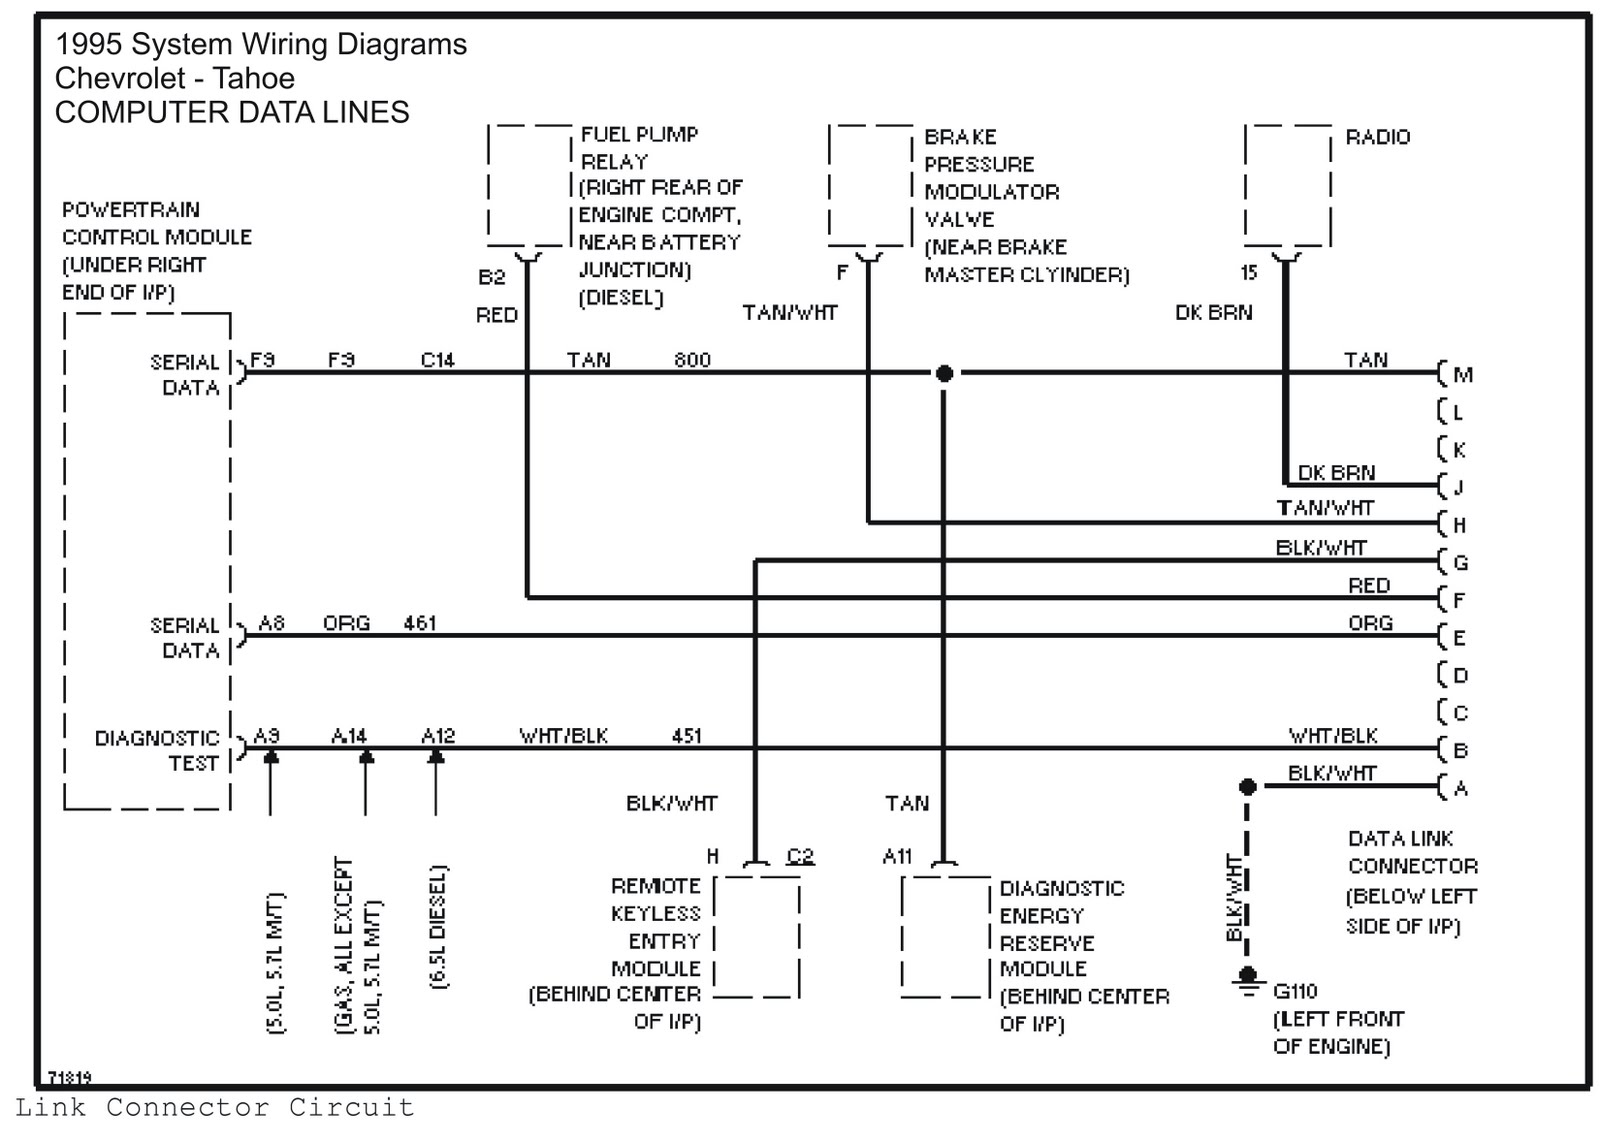 1995 System Wiring Diagrams Chevrolet Tahoe Computer Data